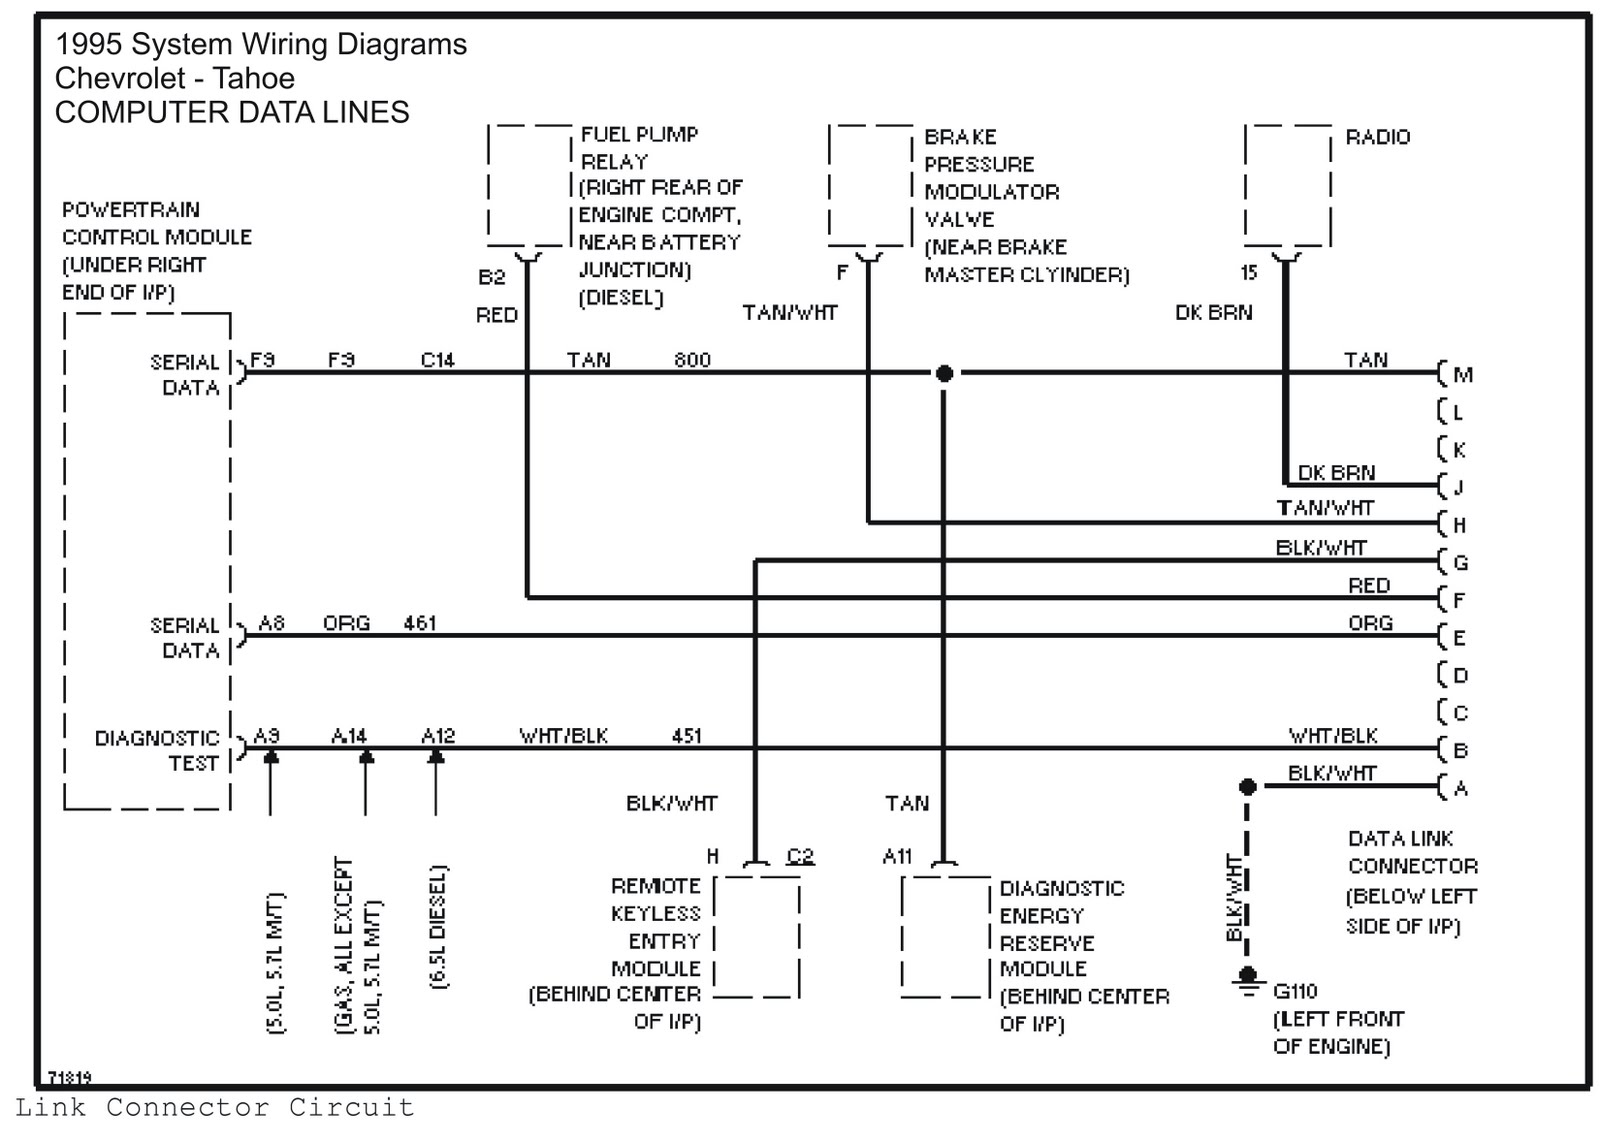 1995 System Wiring Diagrams Chevrolet Tahoe Computer Data